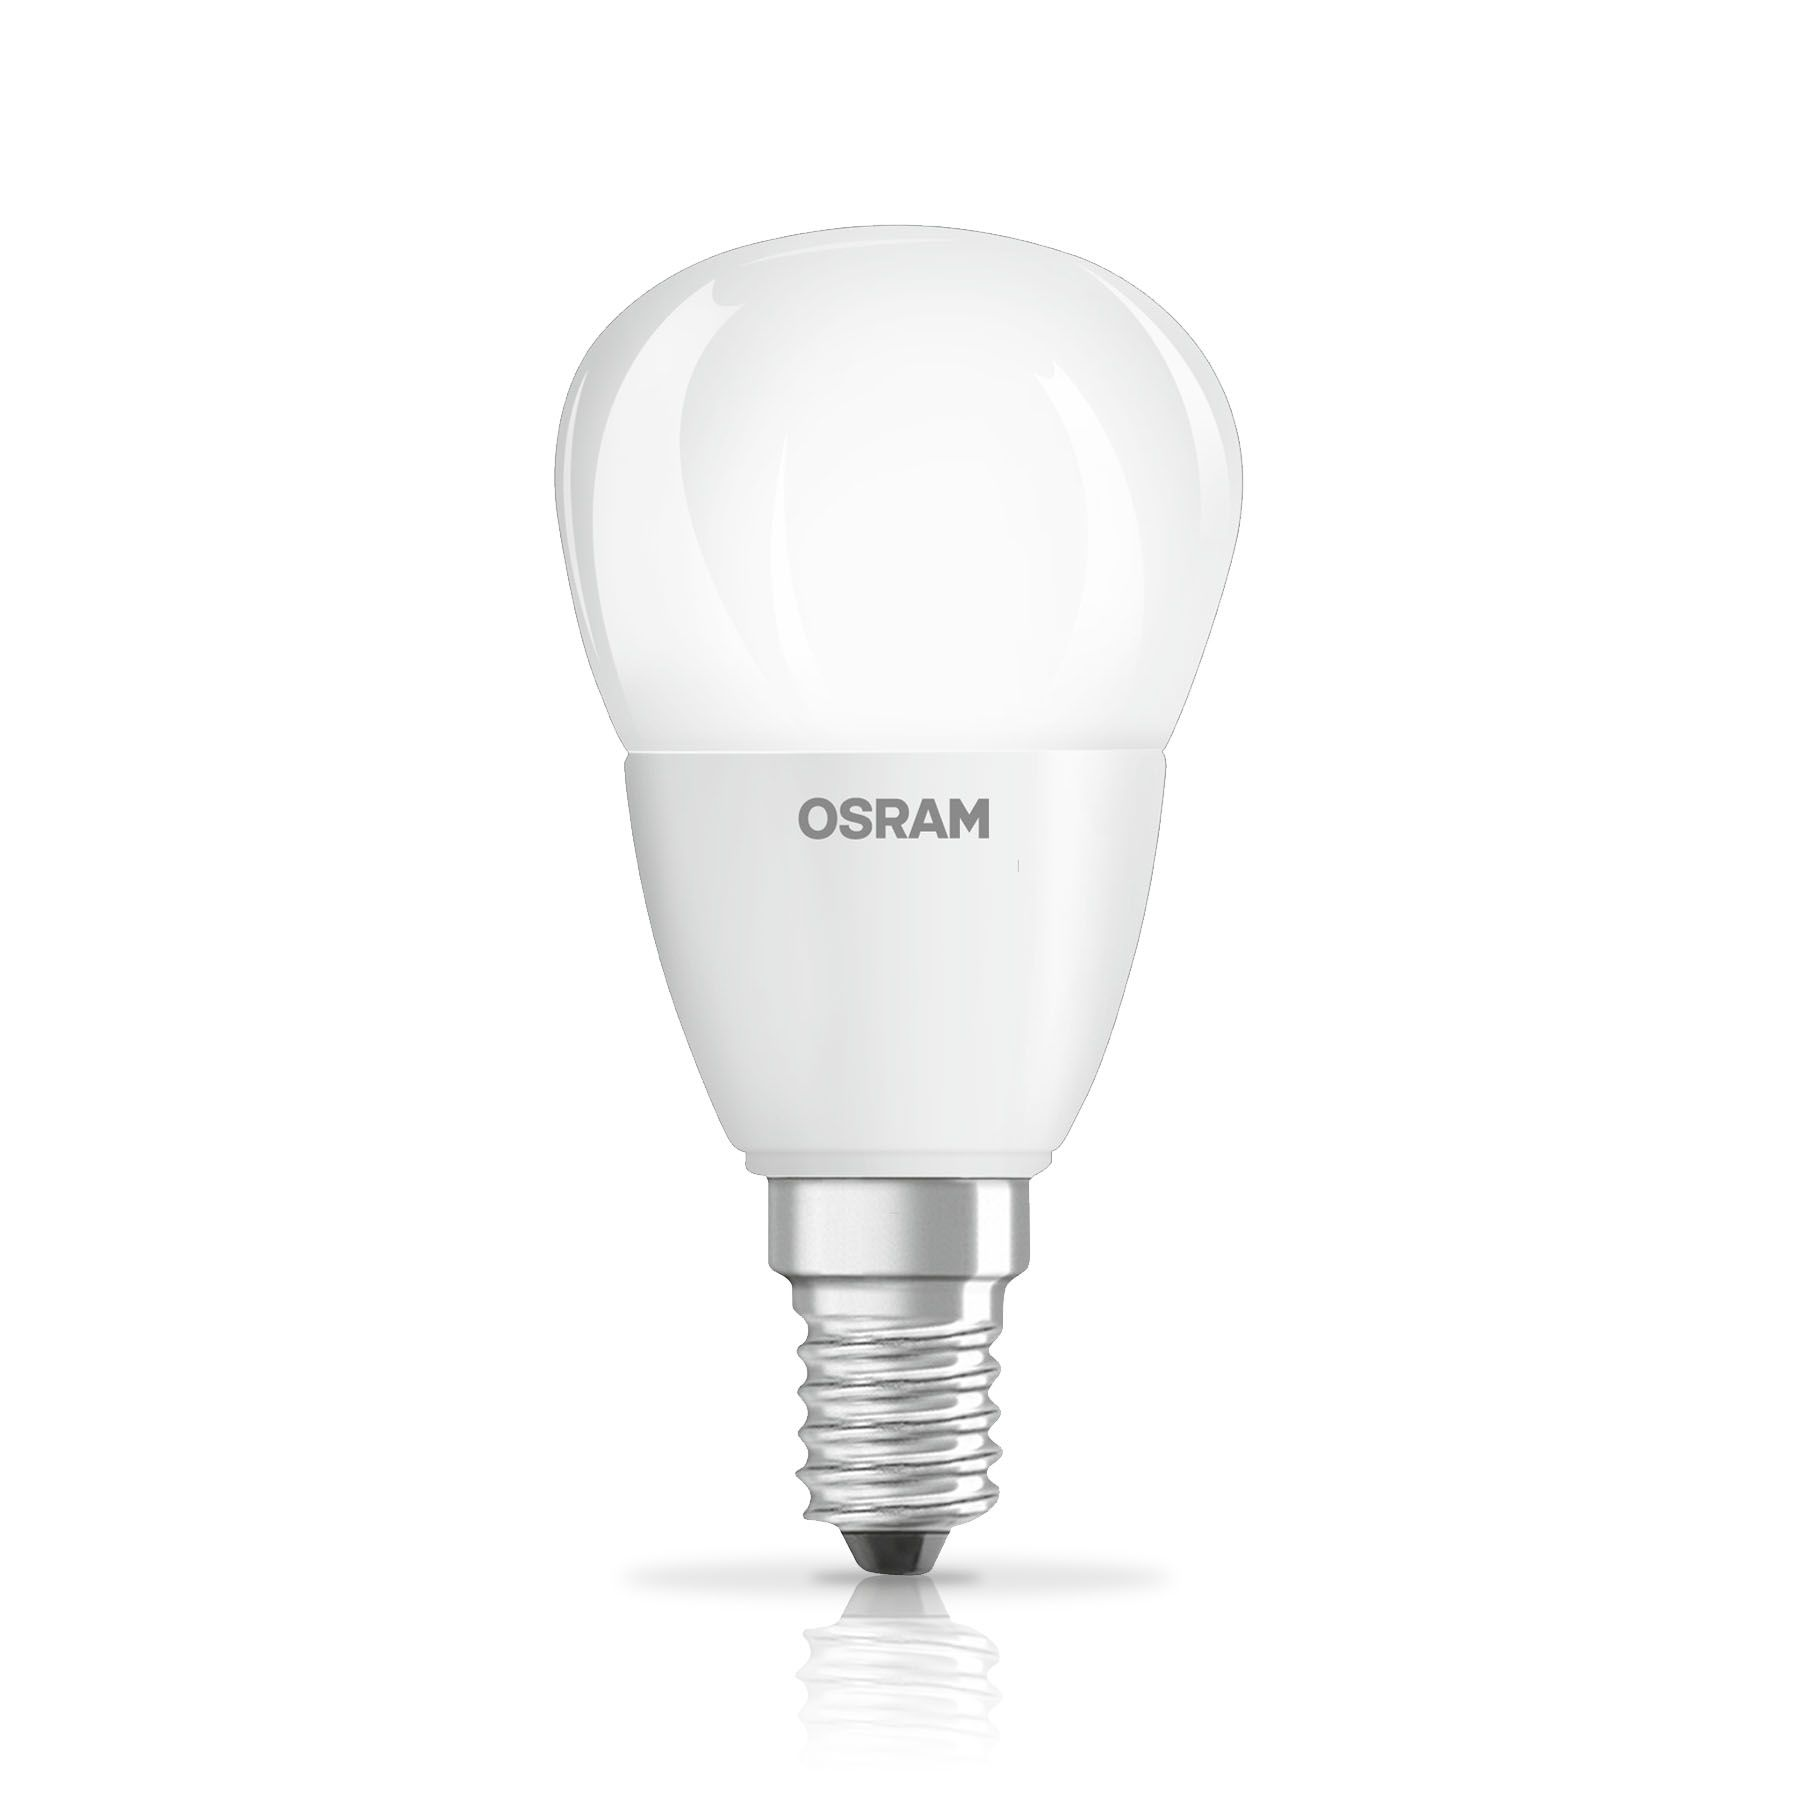 Osram Superstar Classic LED Bulb E14 5W warmwhite frosted 470lm 2700K